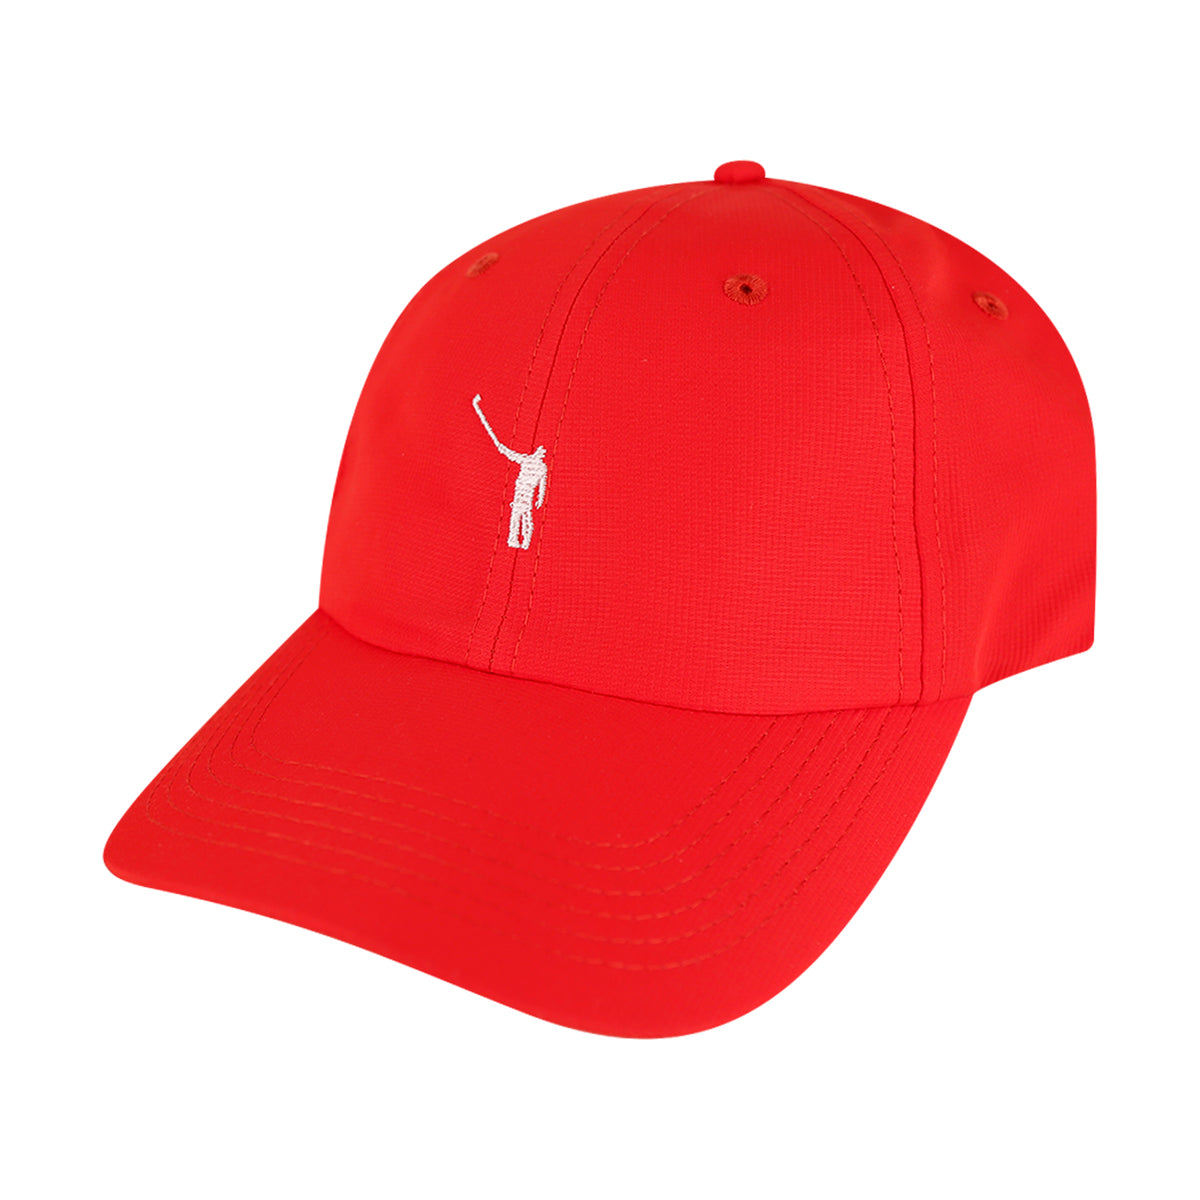 The No Laying Up Hat | Chili Red w/ White Logo